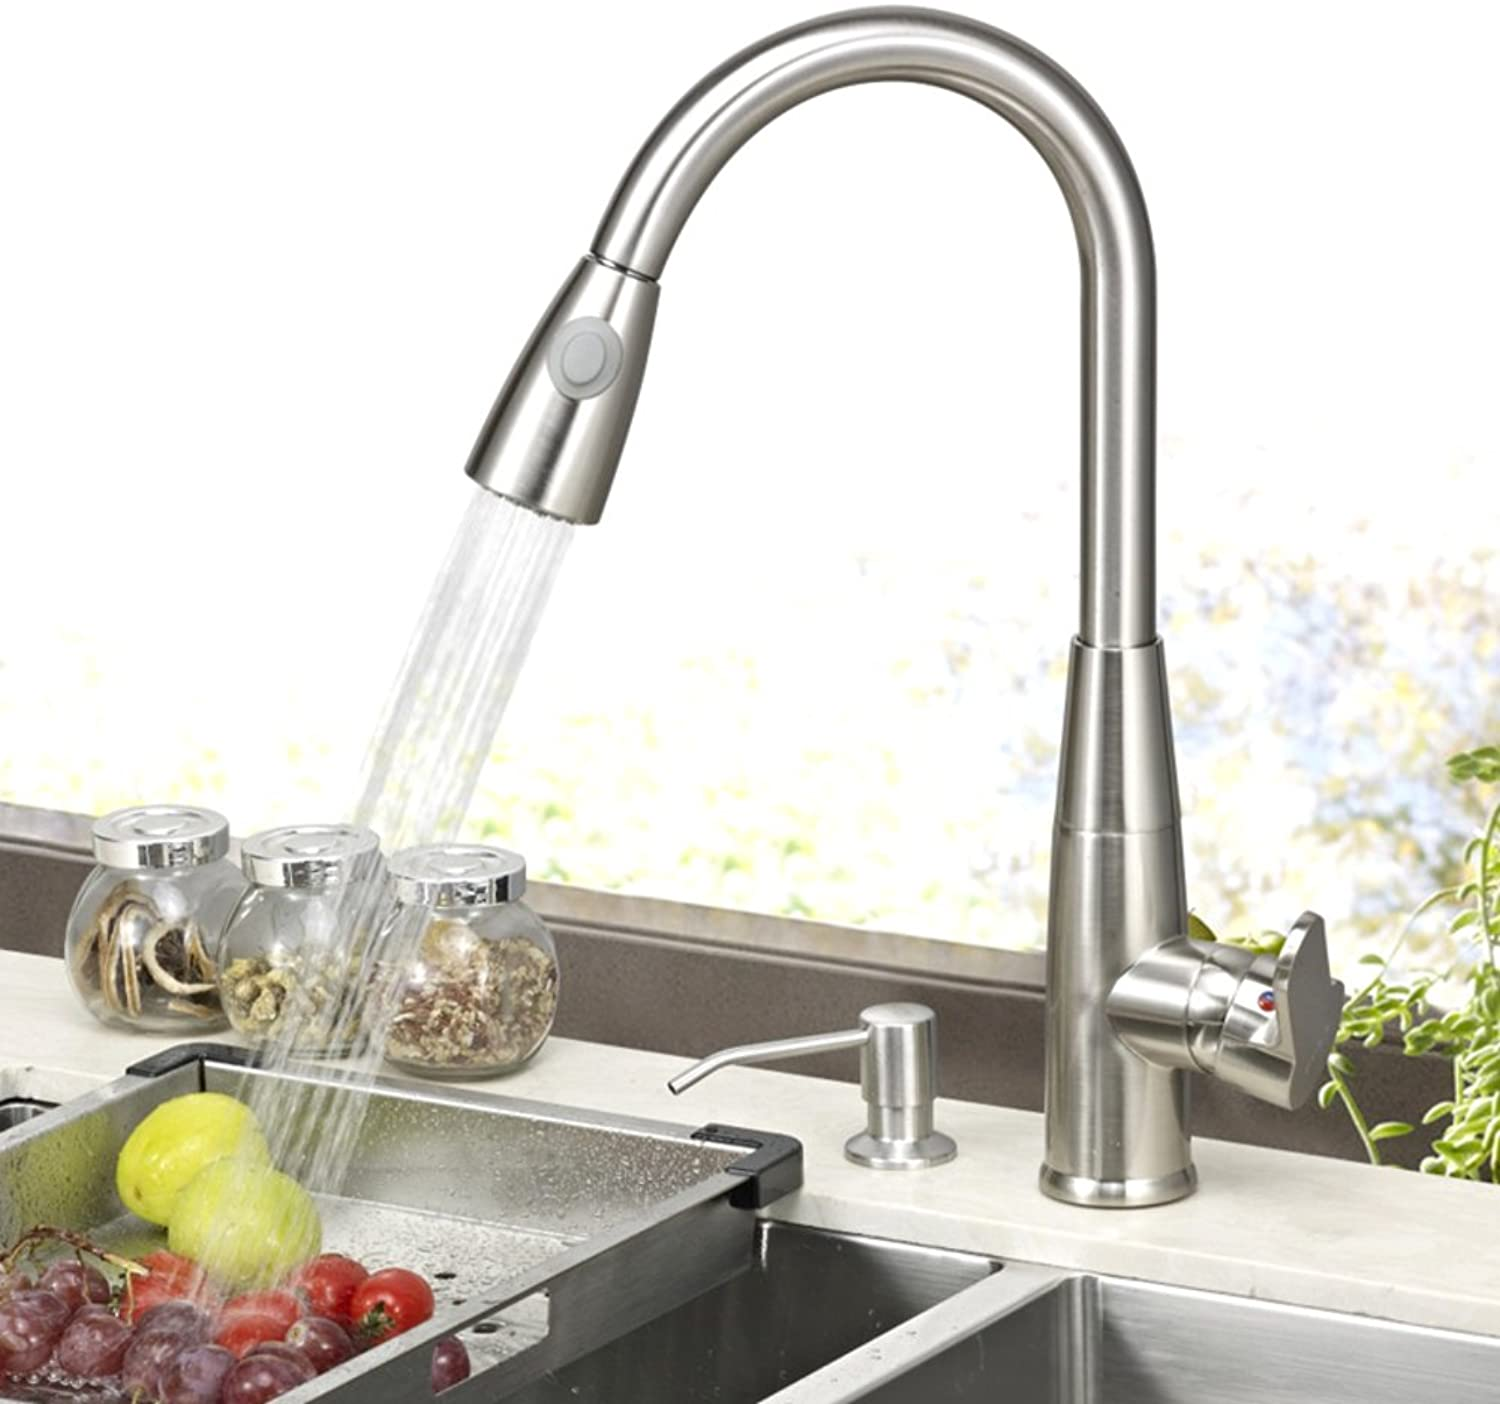 Kitchen Faucet Hot and Cold Sink Faucet Retractable redary Drawing air Conditioning Pull Vegetables Basin Faucet